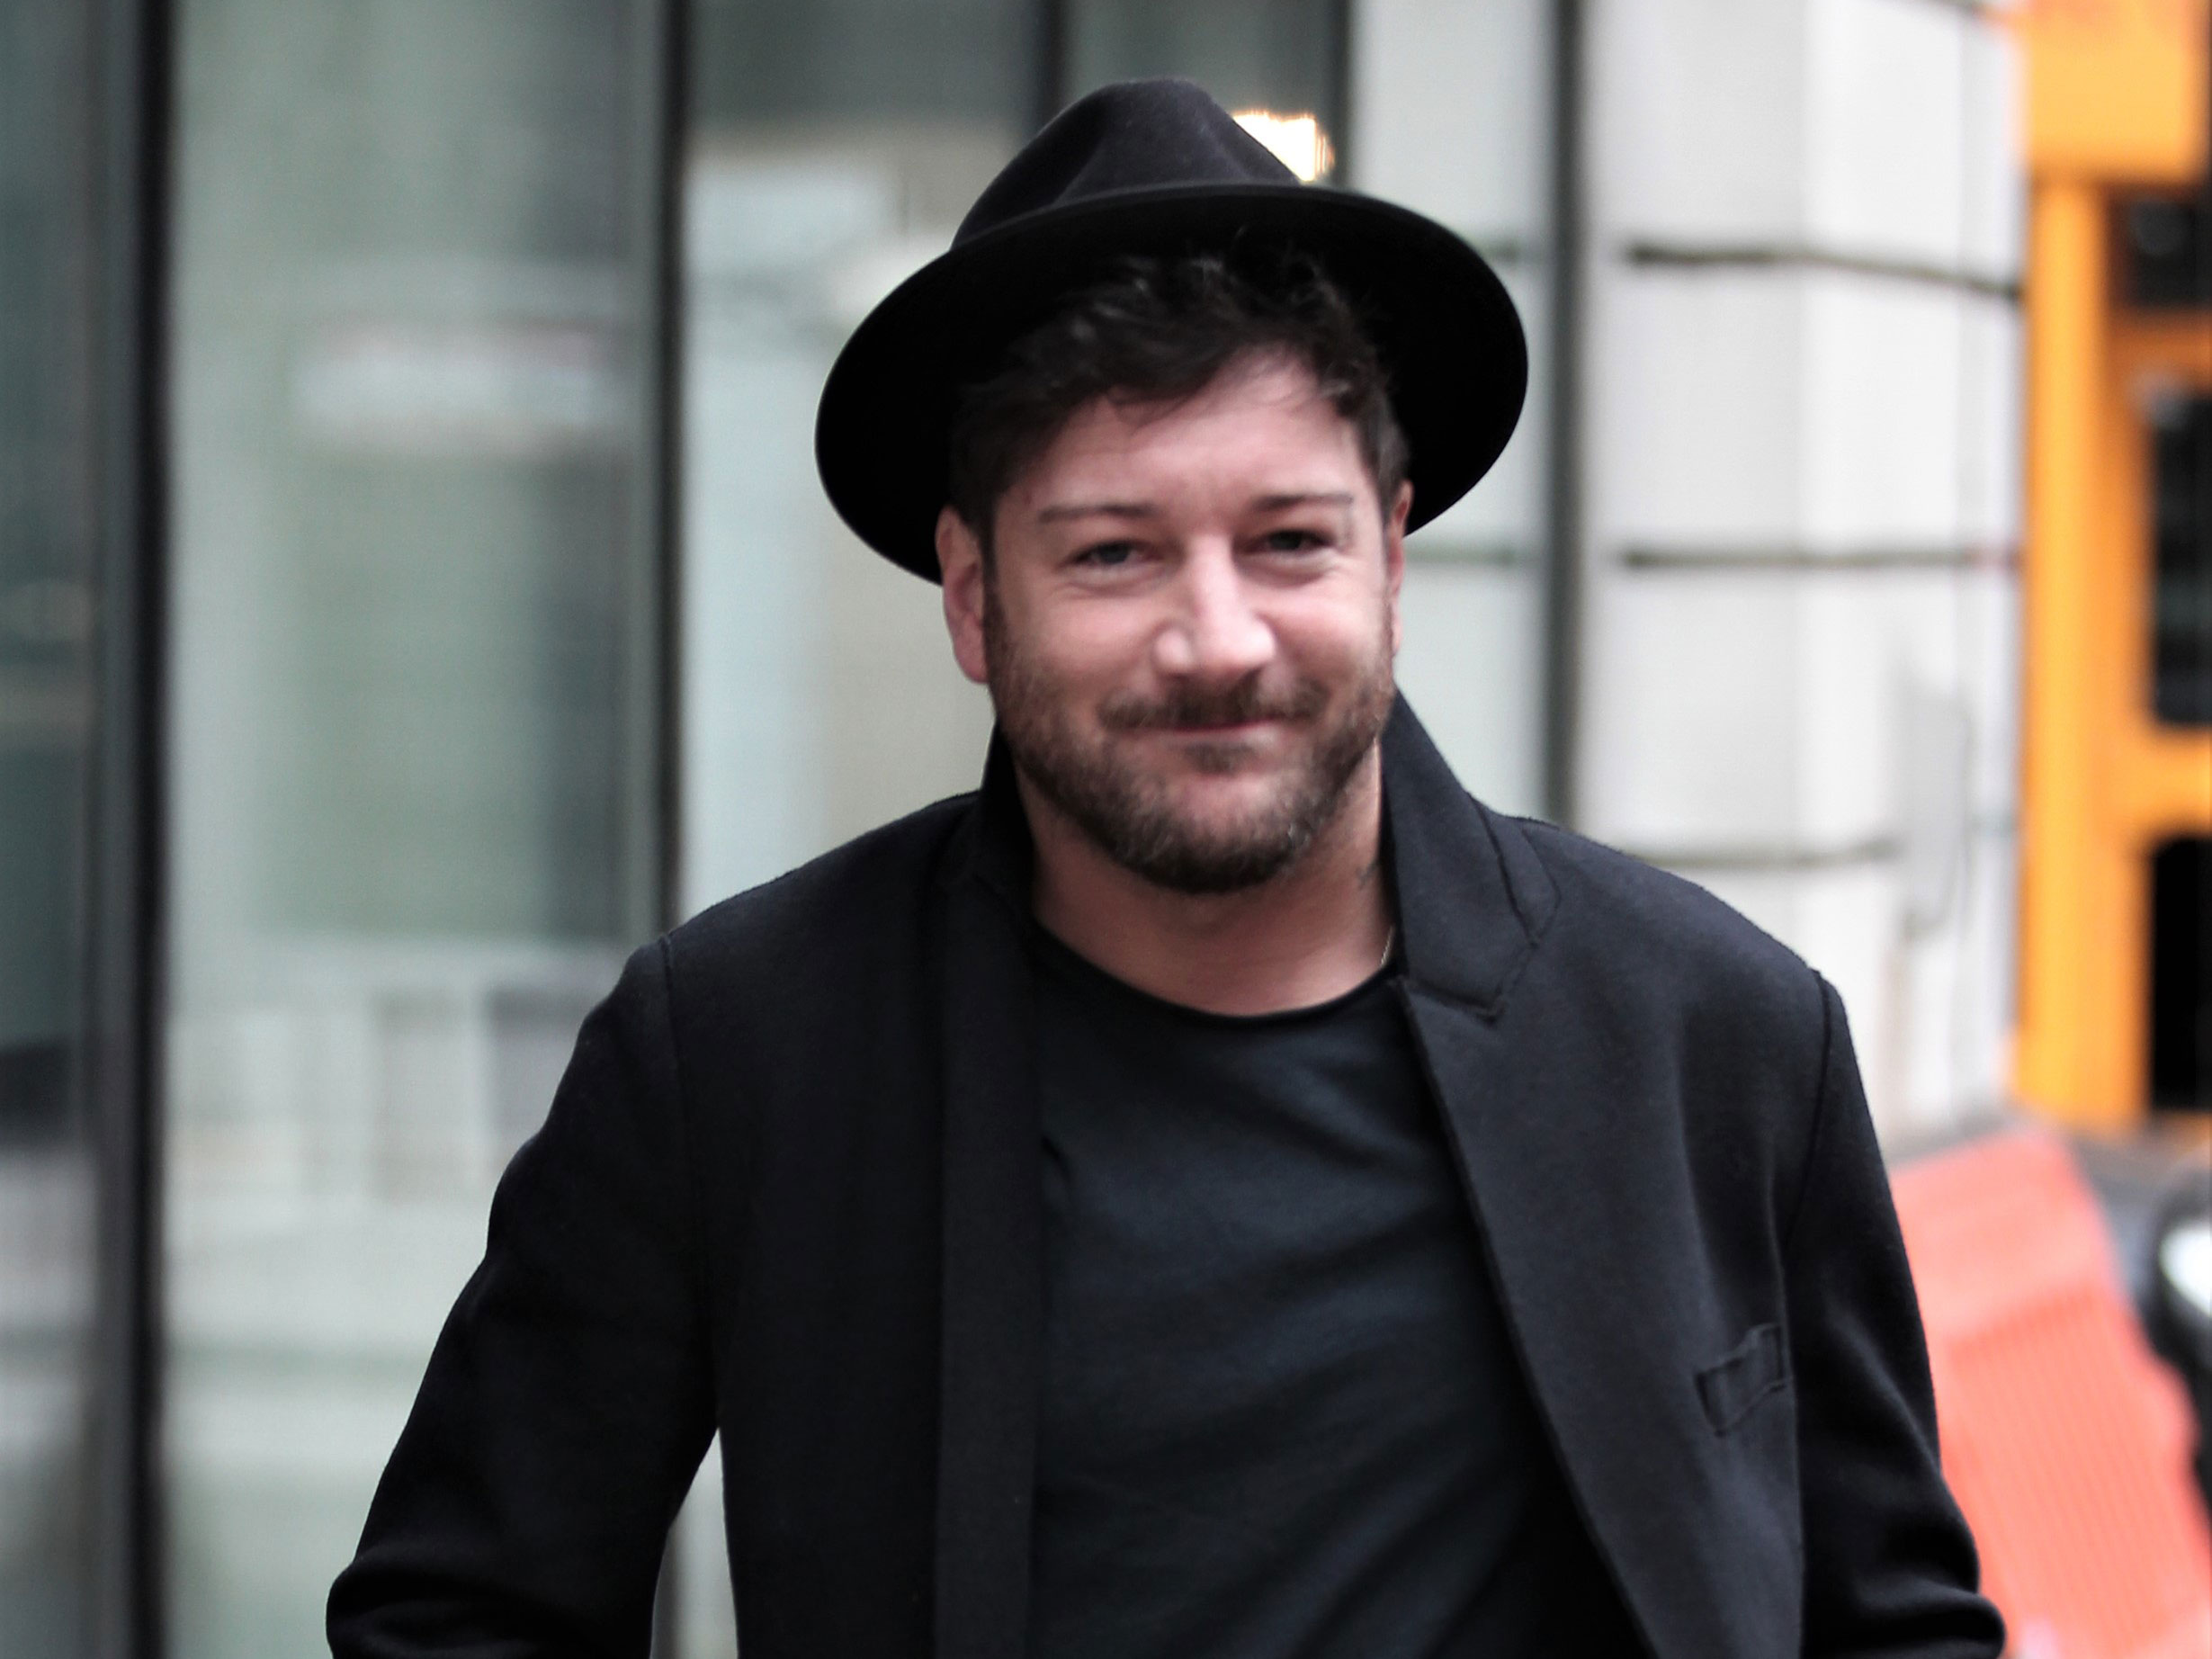 Matt Cardle breaks silence on swapping messages with Meghan Markle